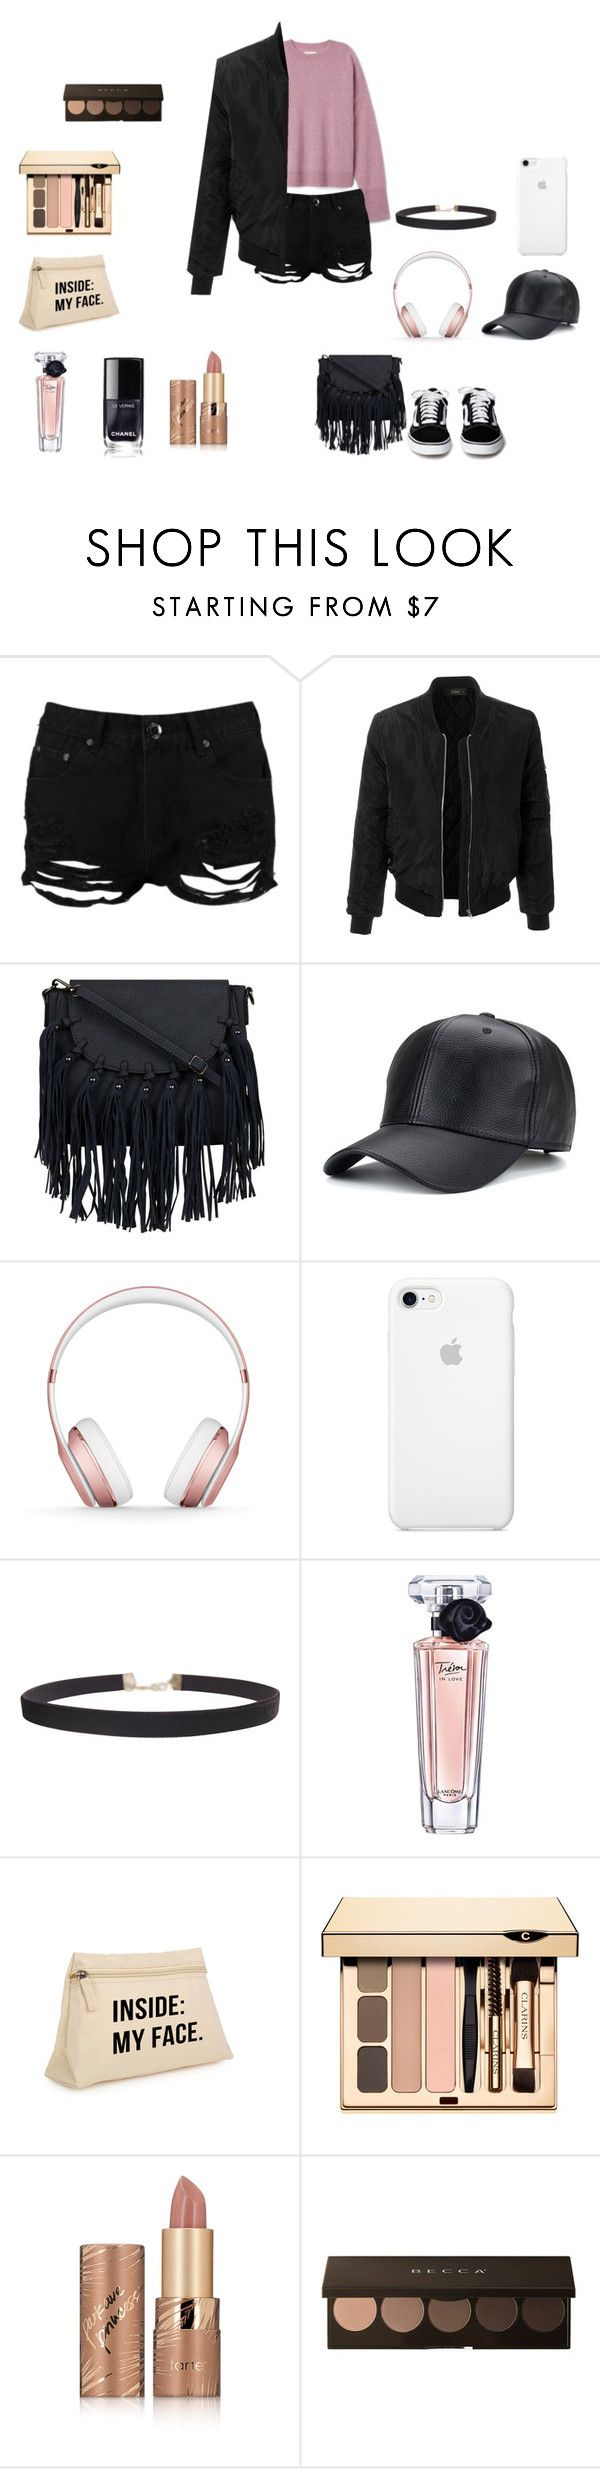 """""""one less problem"""" by julia-moore-238 on Polyvore featuring Boohoo, LE3NO, Beats by Dr. Dre, Humble Chic, Lancôme and tarte"""